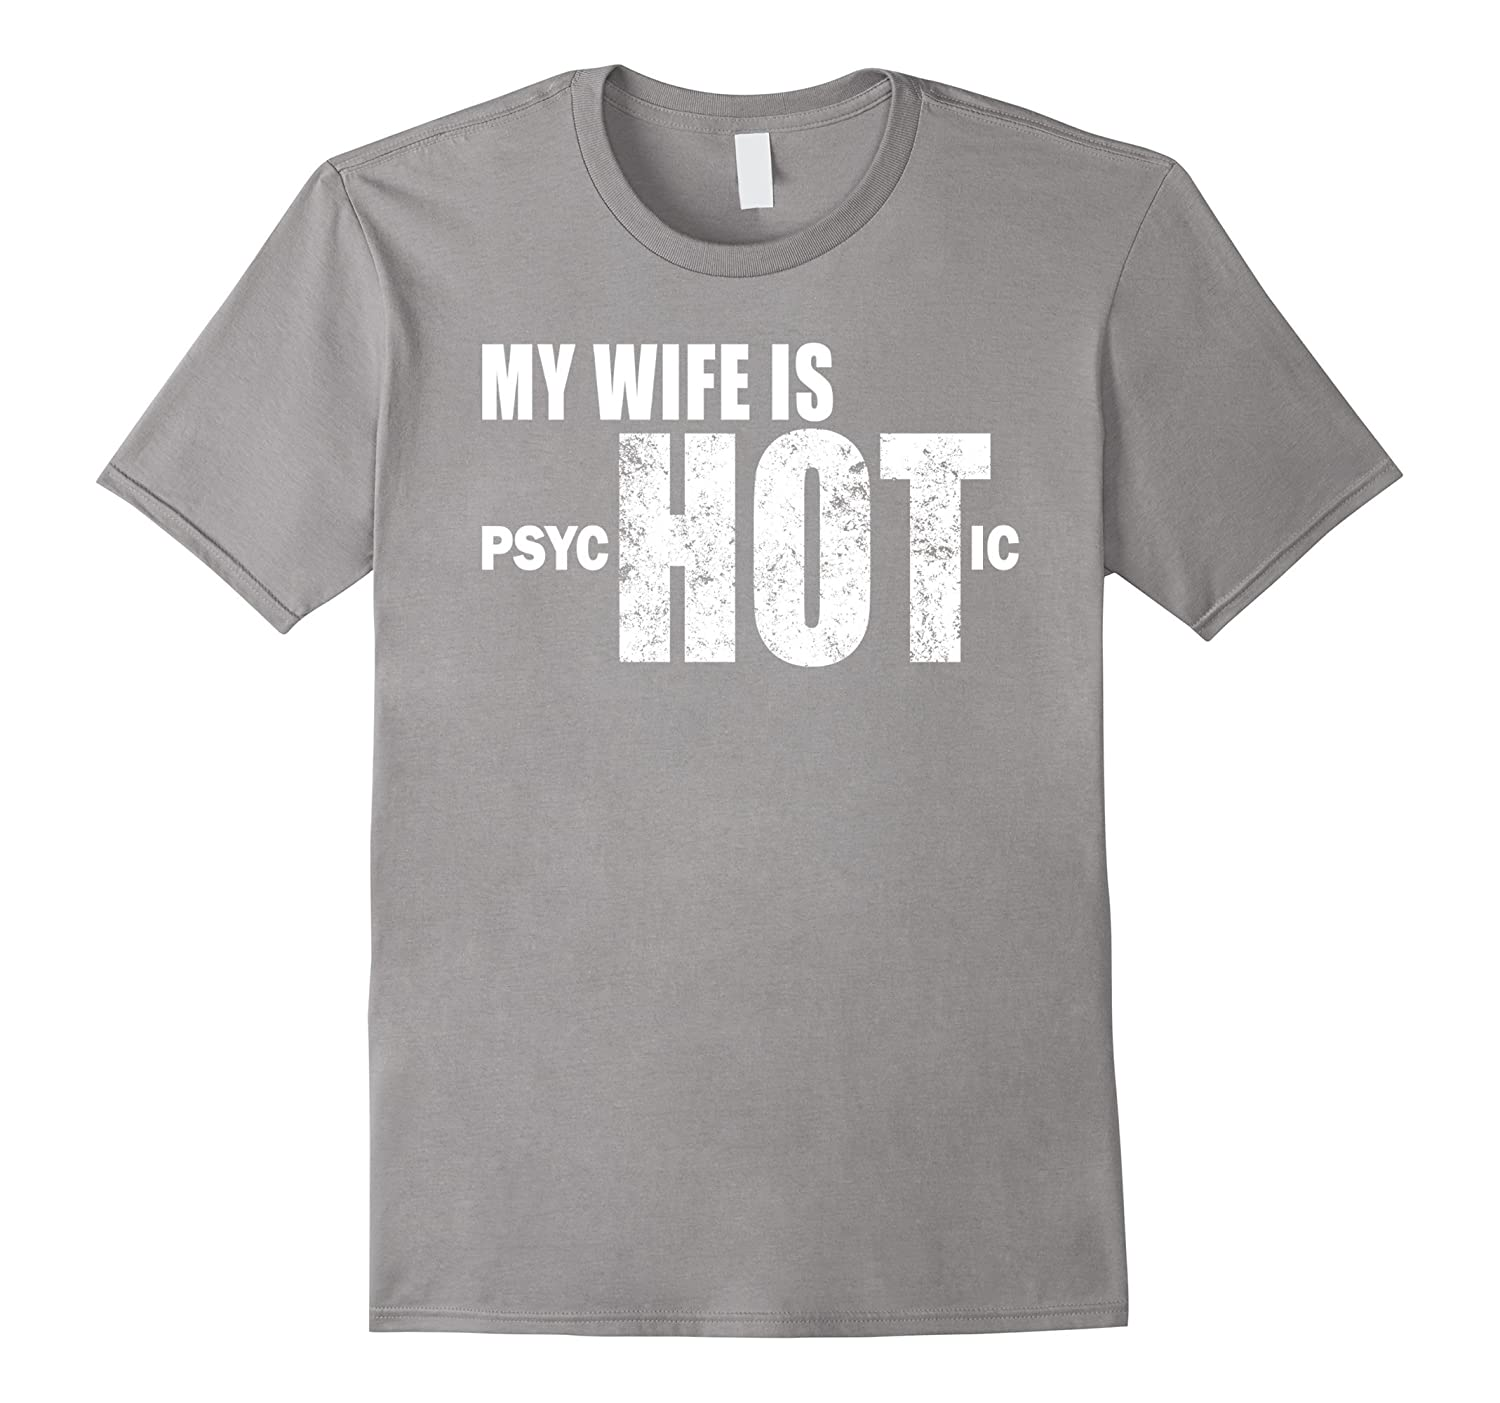 Men's Funny Gift for Husband, Wife is psycHOTic Funny Wife T-Shirt